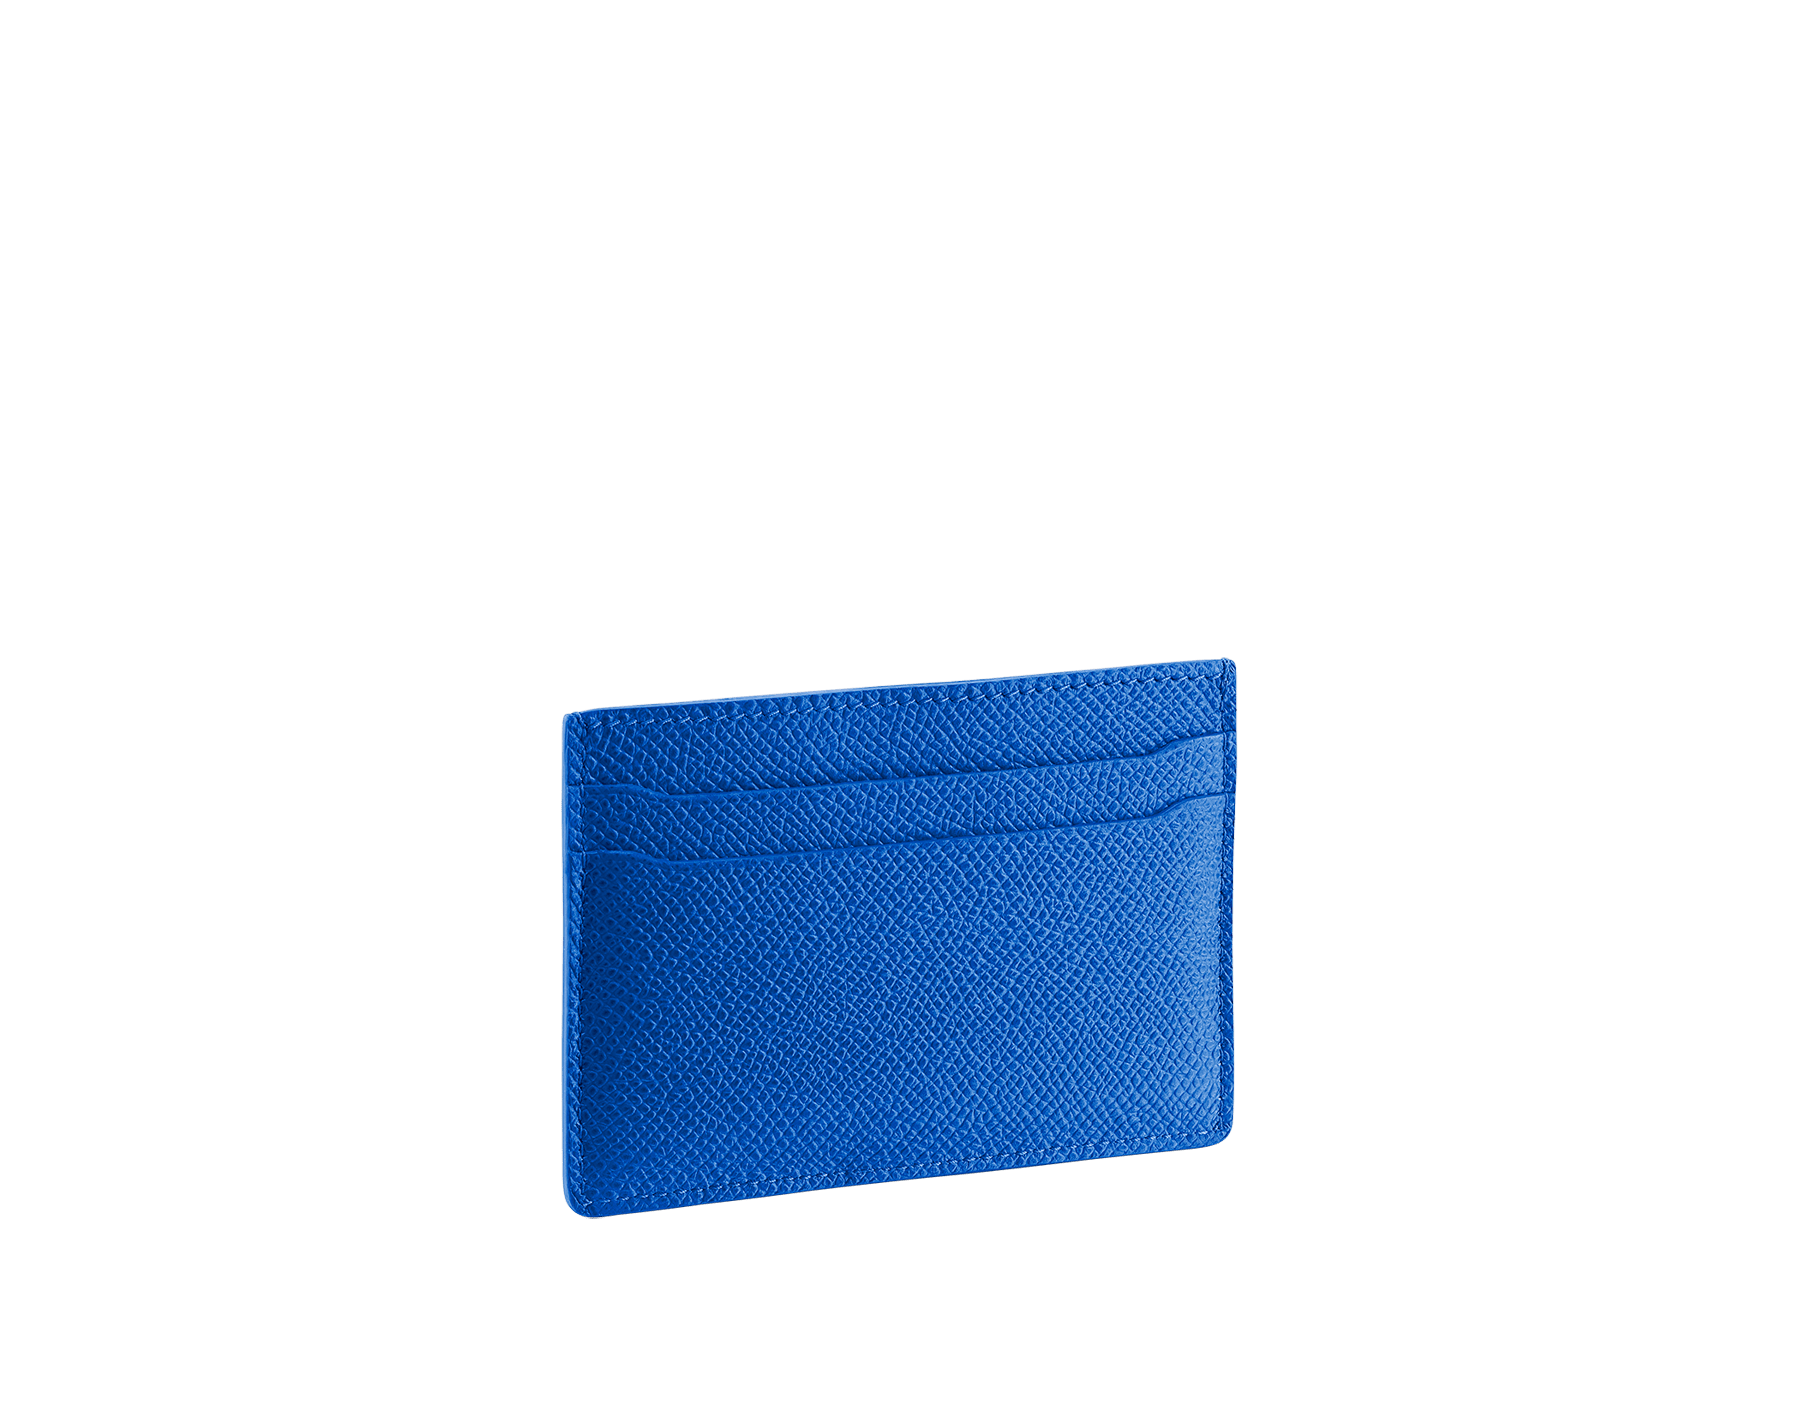 BVLGARI BVLGARI credit card holder in black and cobalt tourmaline grain calf leather and black nappa lining. Iconic logo décor in palladium plated brass. 288600 image 2